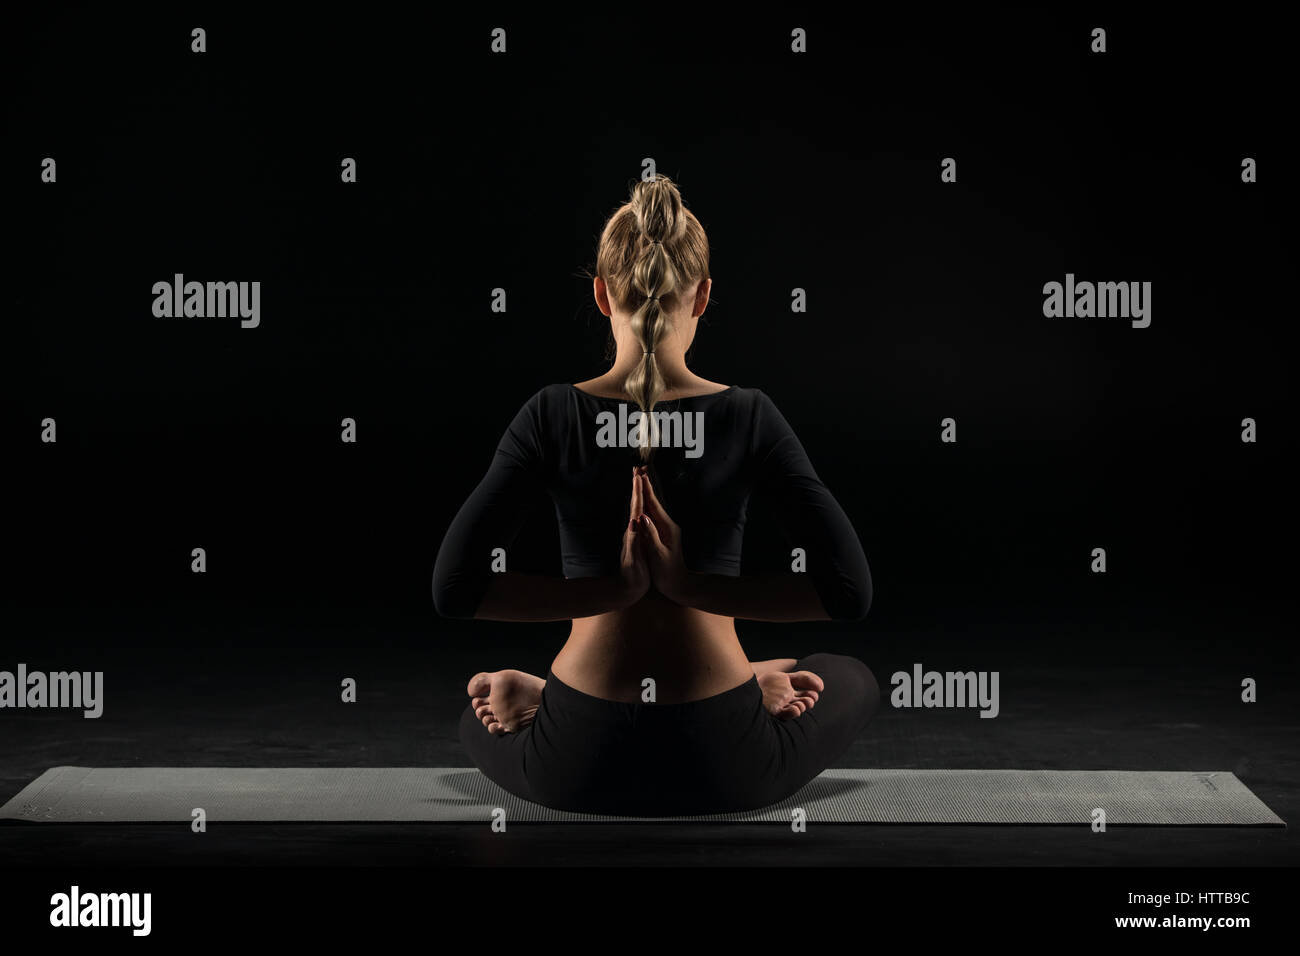 Woman sitting in yoga position - Stock Image